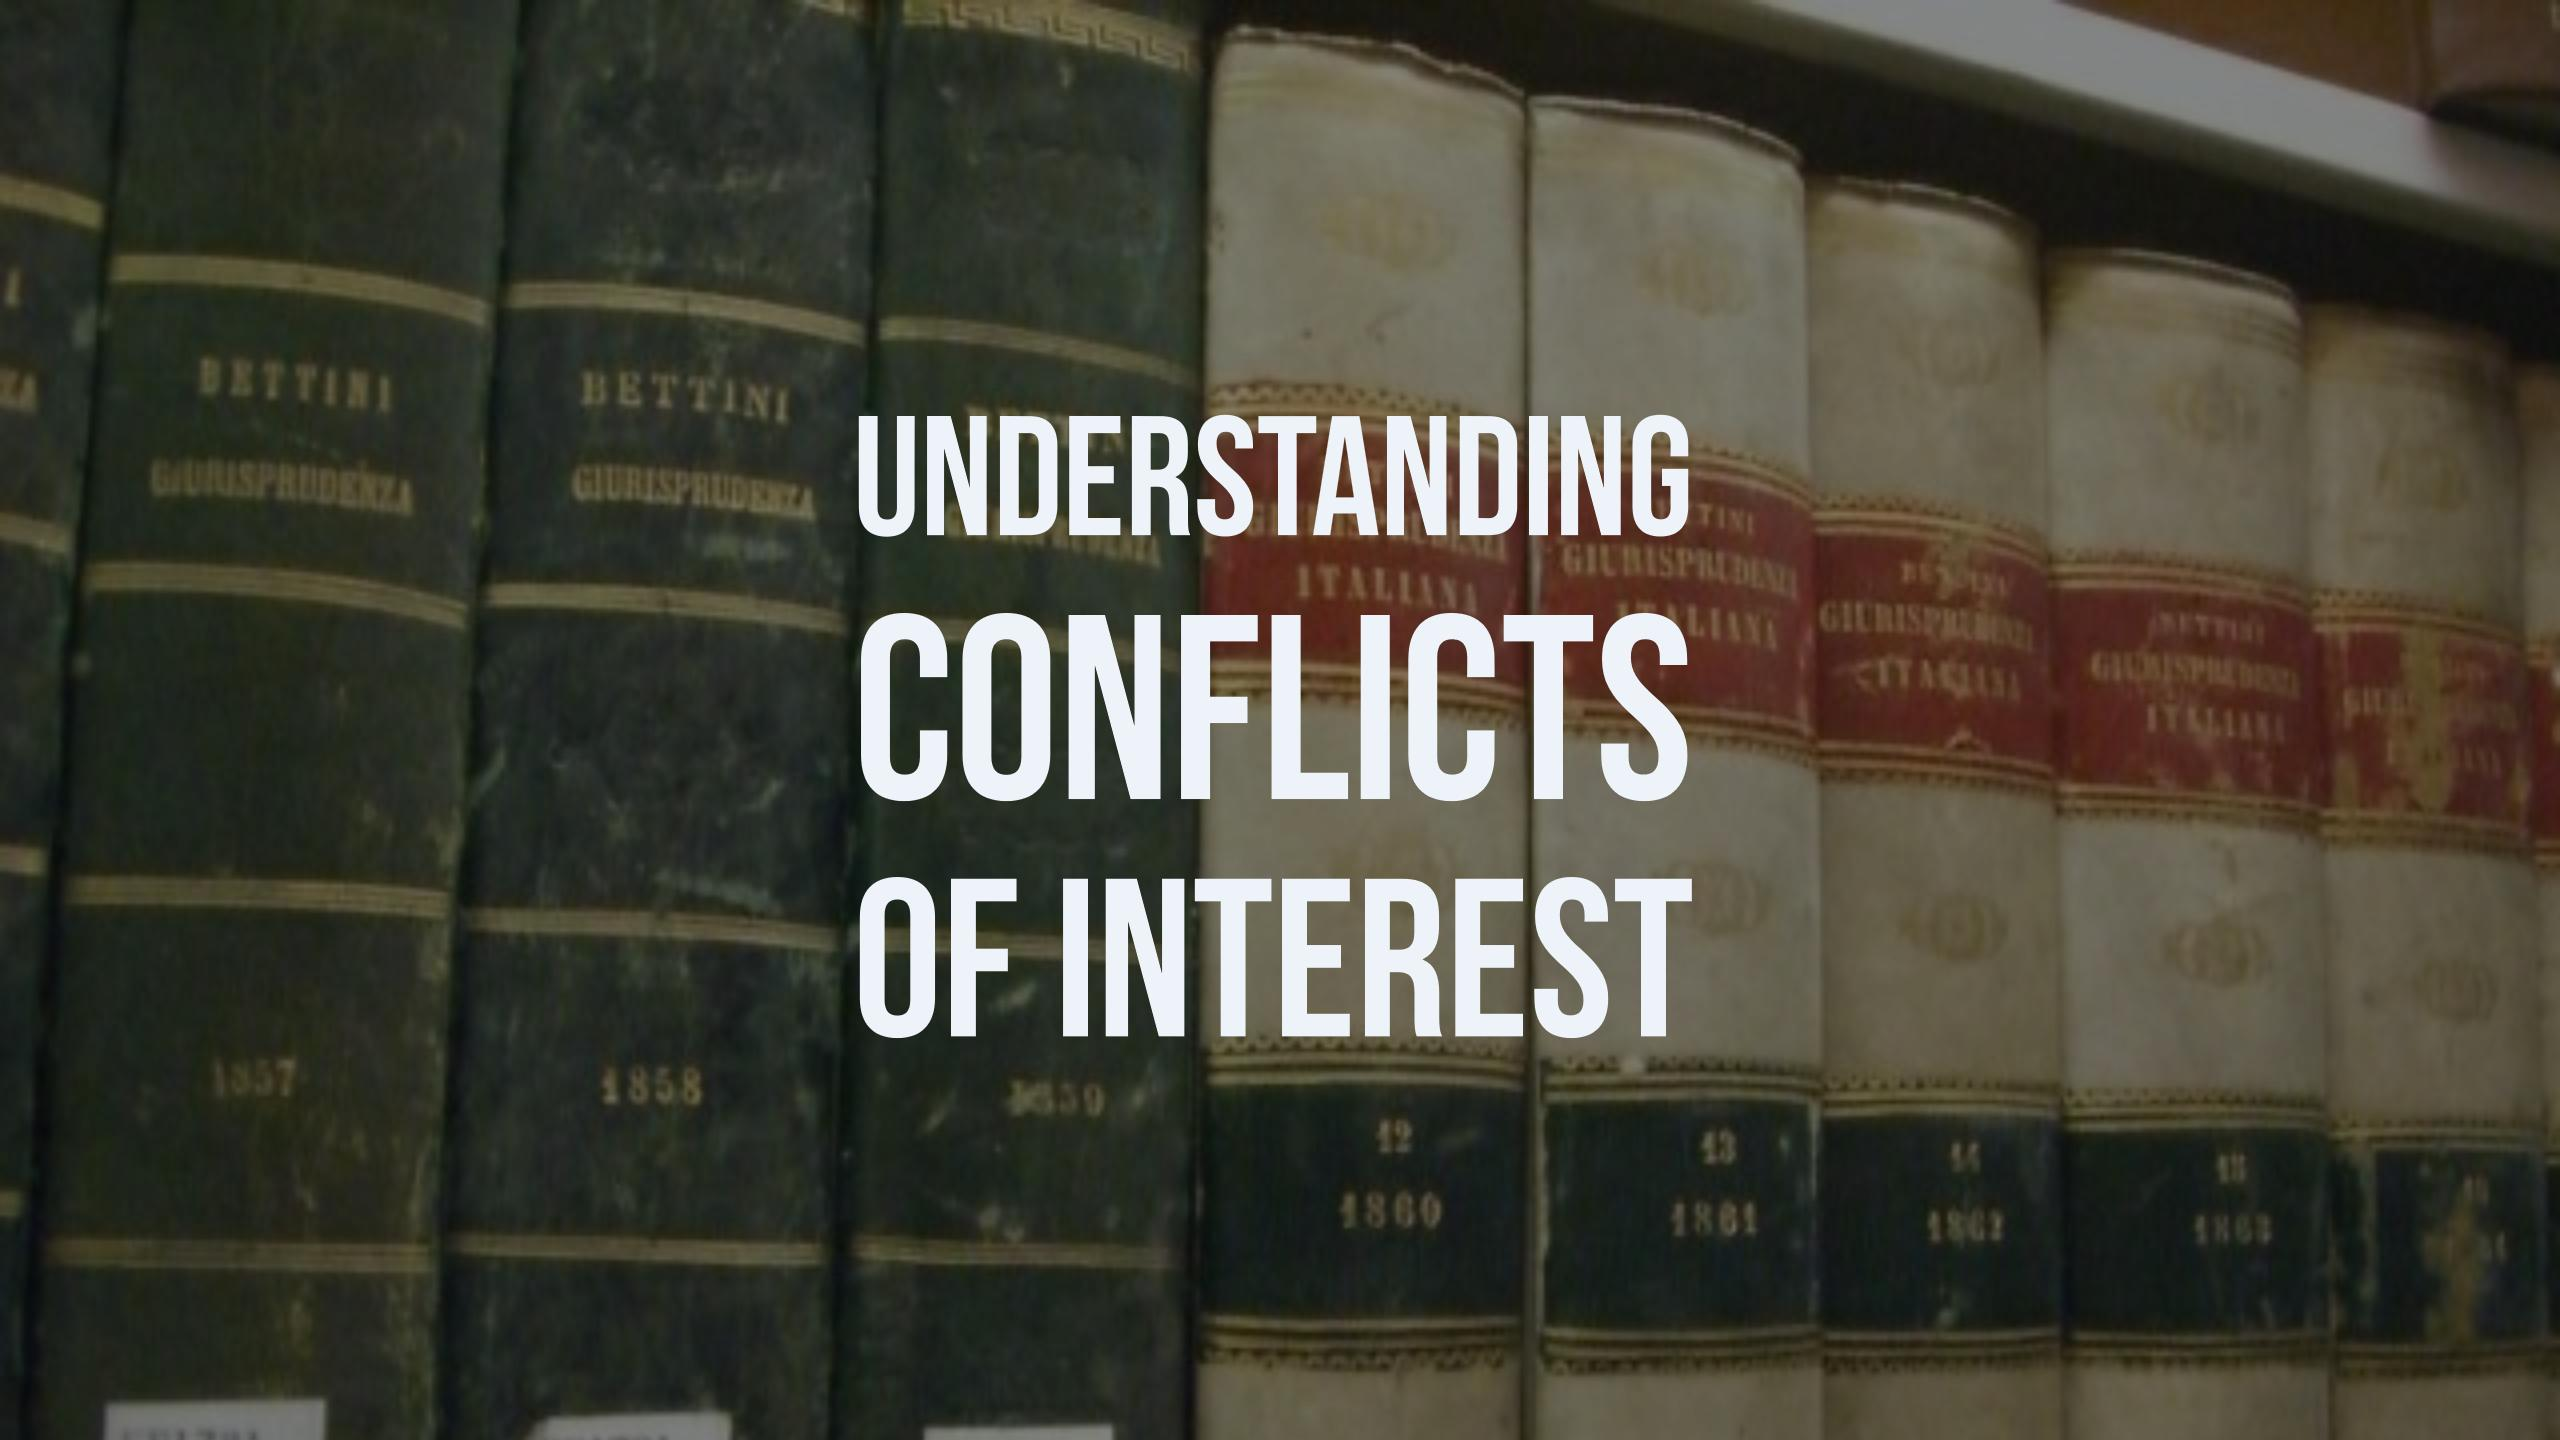 The Facts on Conflicts of Interest